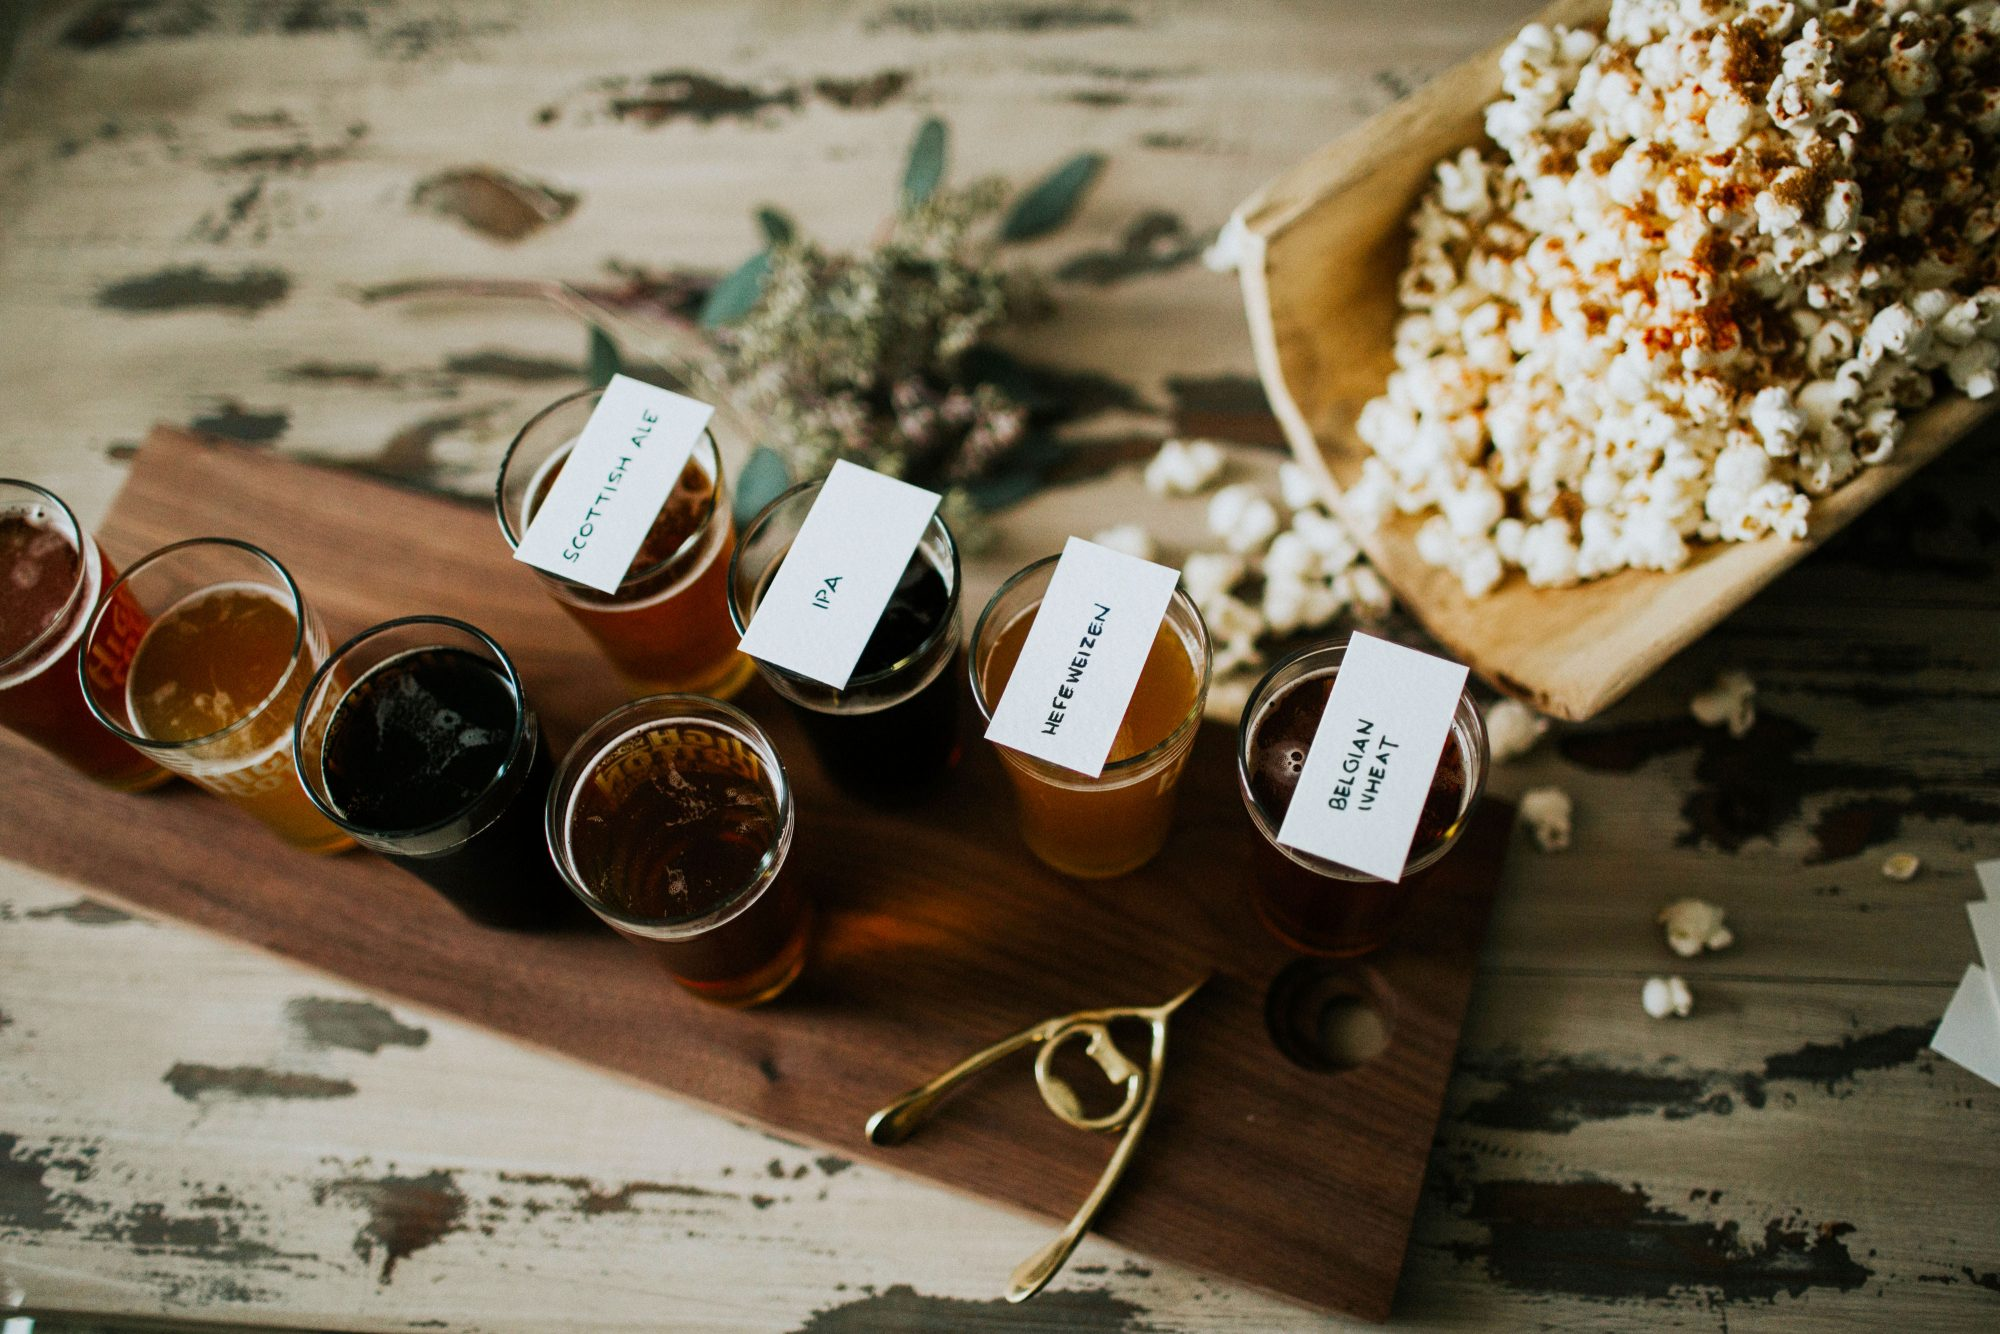 Spiced Popcorn and Beer Pairings for Game Day